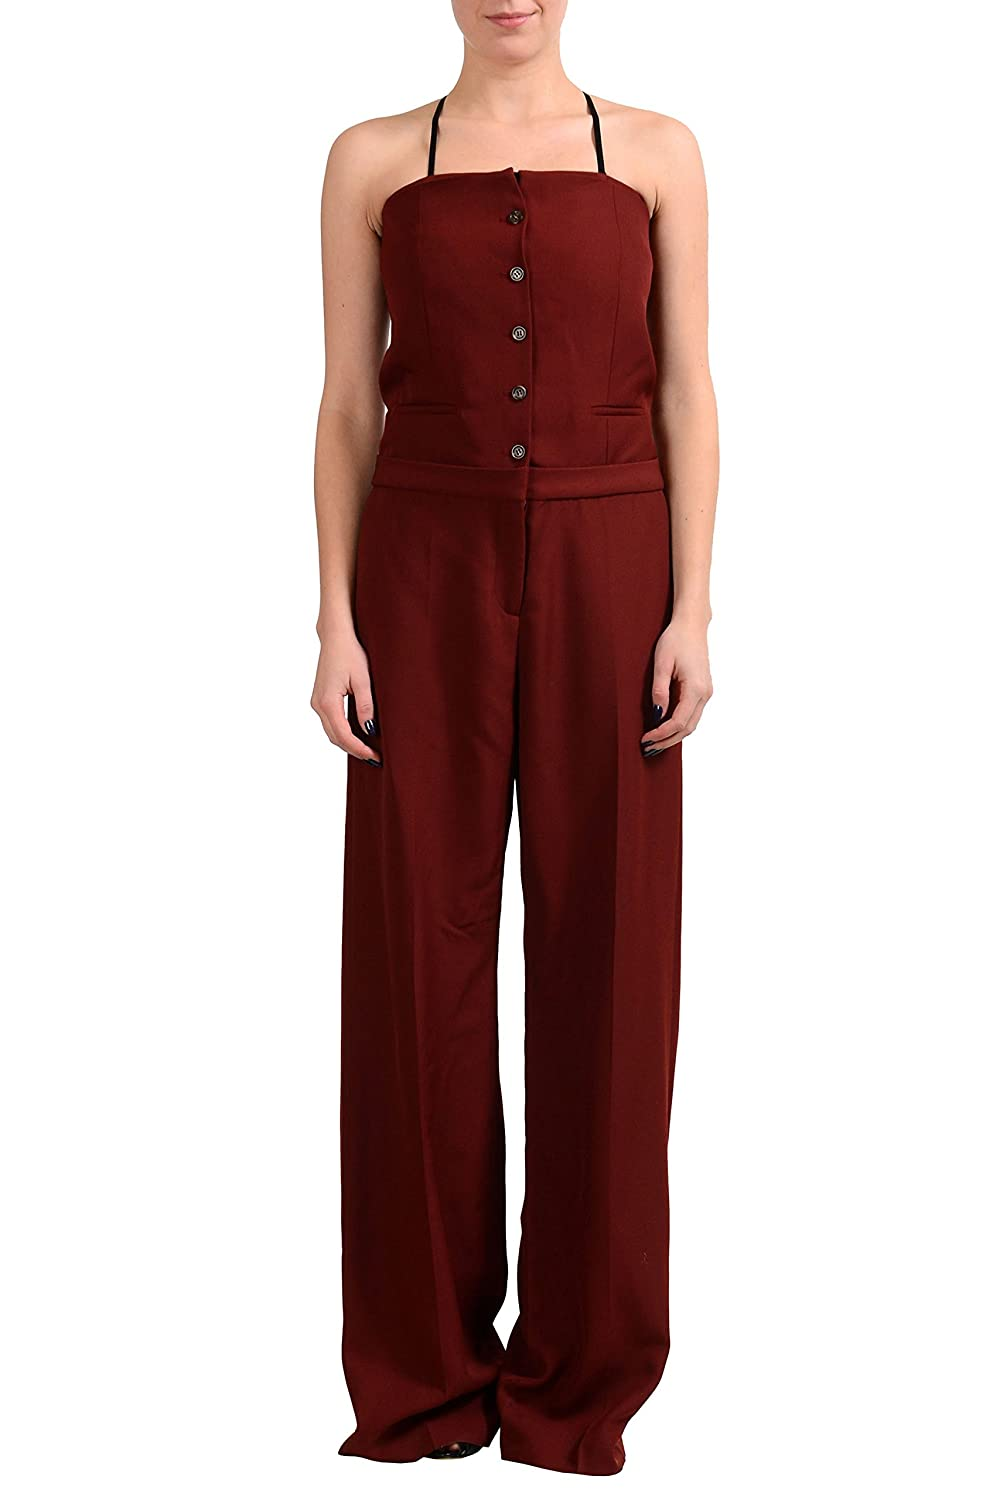 Maison Margiela 1 100% Wool Burgundy Shoulders-Off Women's Jumpsuit US S IT 40